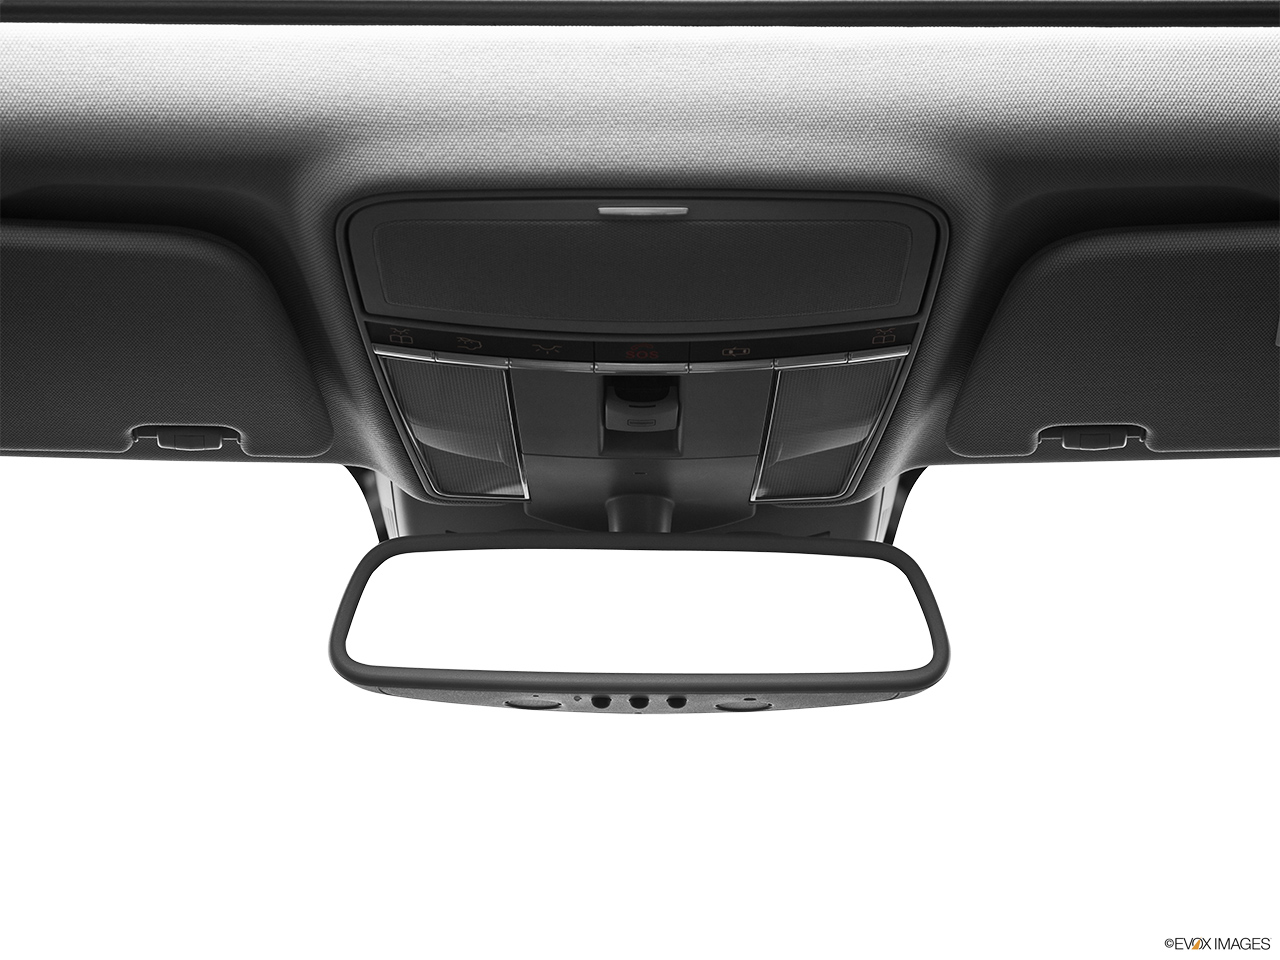 2012 Mercedes-Benz S-Class Hybrid S400 Courtesy lamps/ceiling controls.